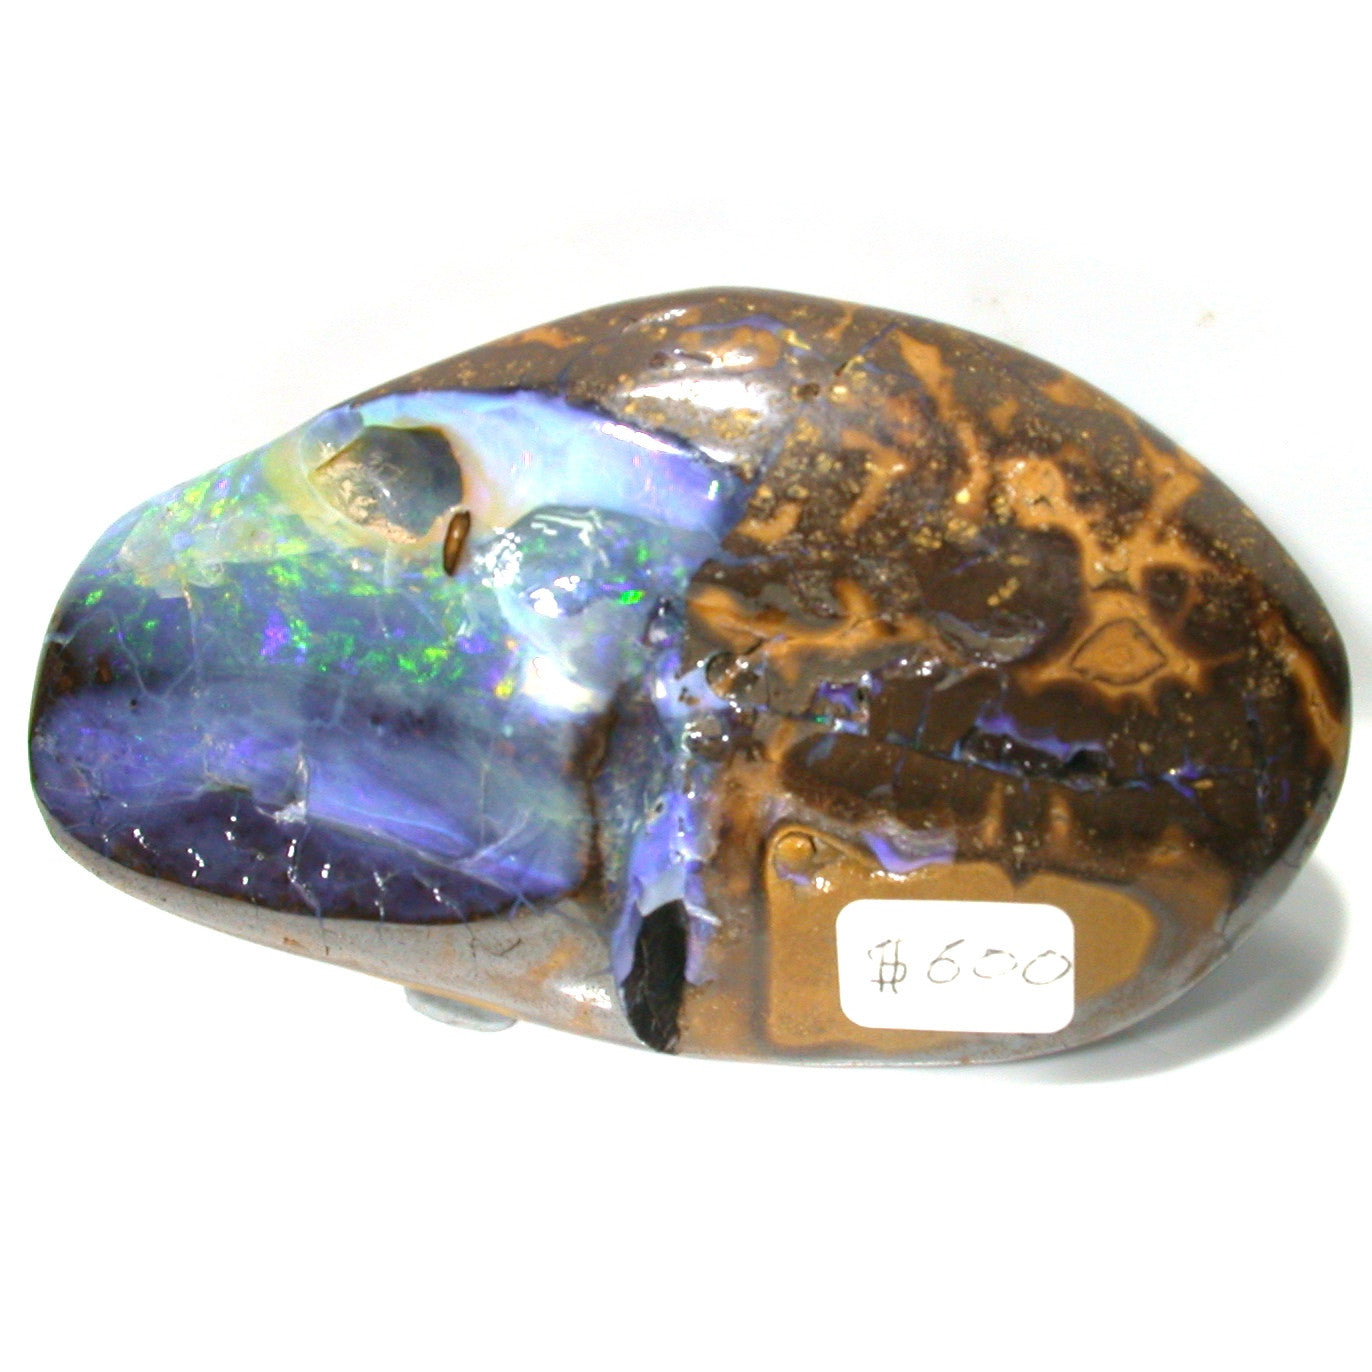 Green multi coloured jelly boulder opal polished specimen